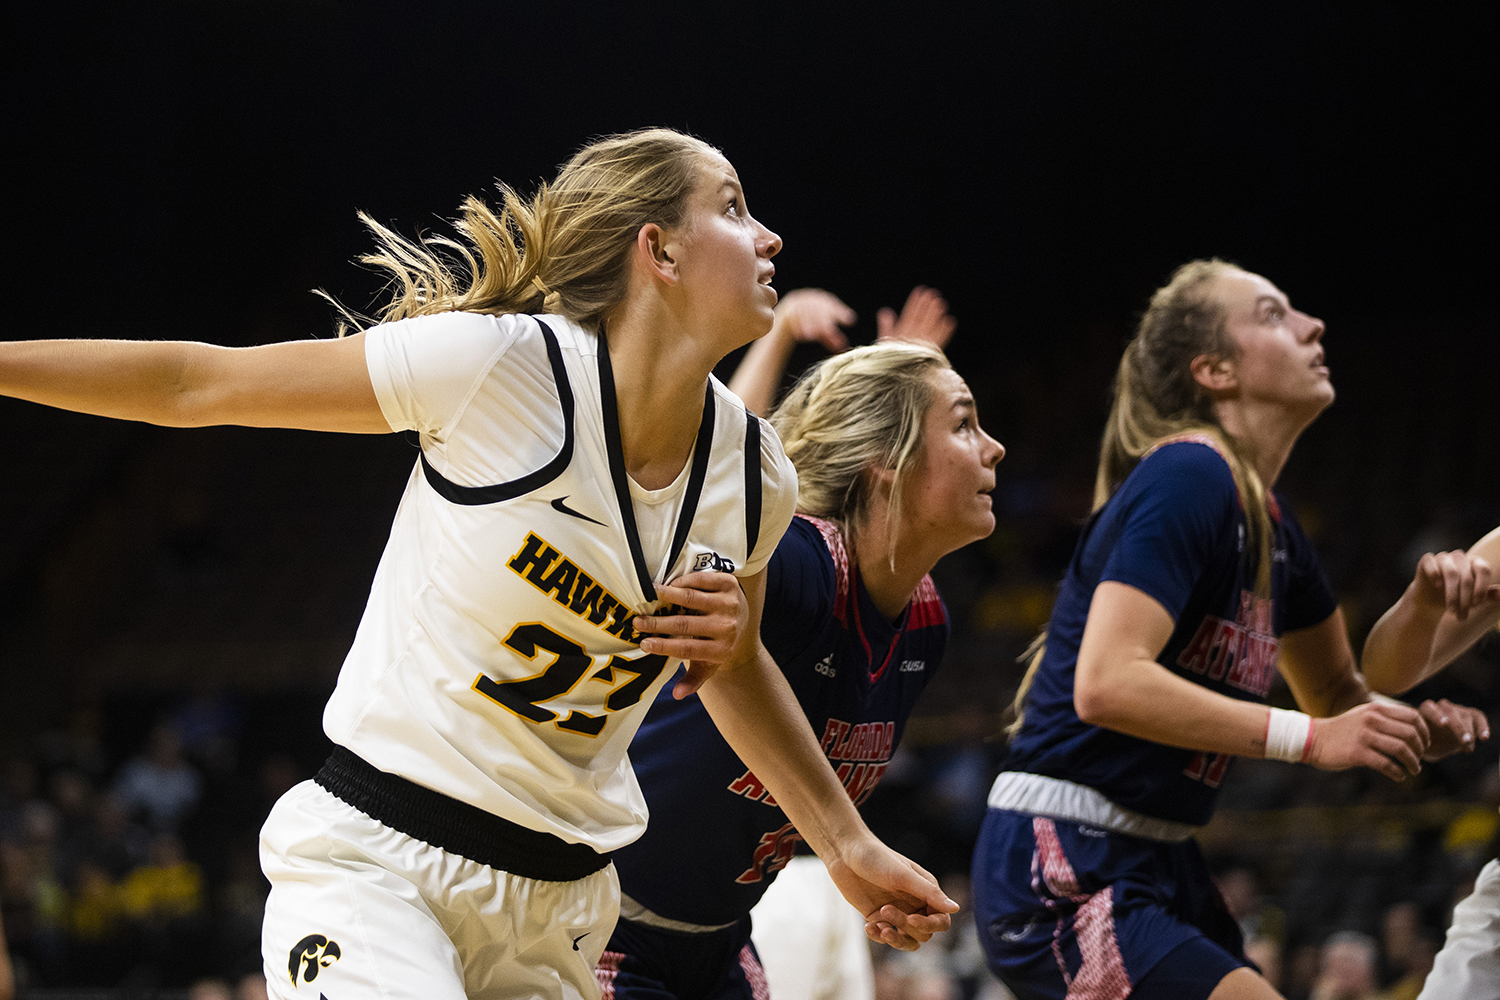 Iowa forward Logan Cook runs for a rebound during the women's basketball game against Florida Atlantic on Thursday, November 7, 2019. The Hawkeyes defeated the Owls 85-53. Cook played seven minutes in the game.